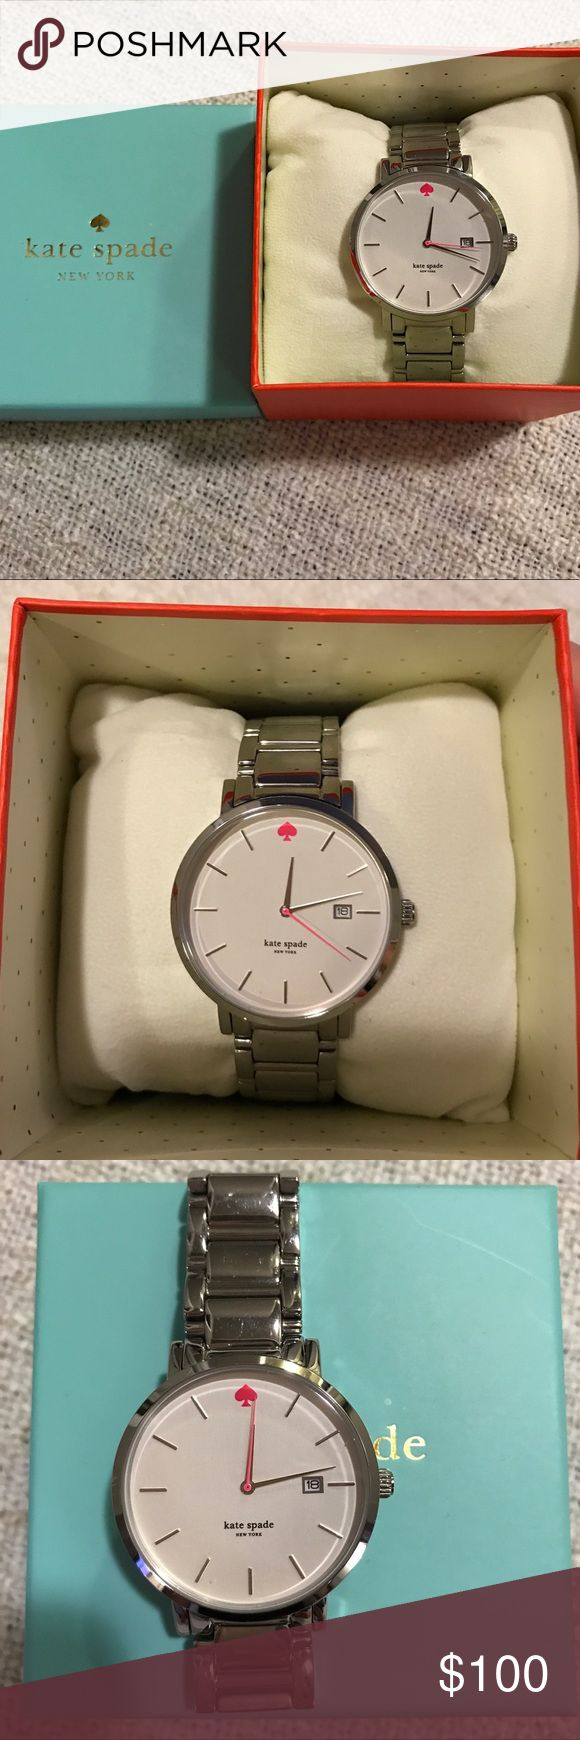 Kate Spade Gramercy Watch Kate Spade stainless Gramercy Watch. Light scratching on the band but not noticeable. Comes with box, book, and extra links. kate spade Accessories Watches